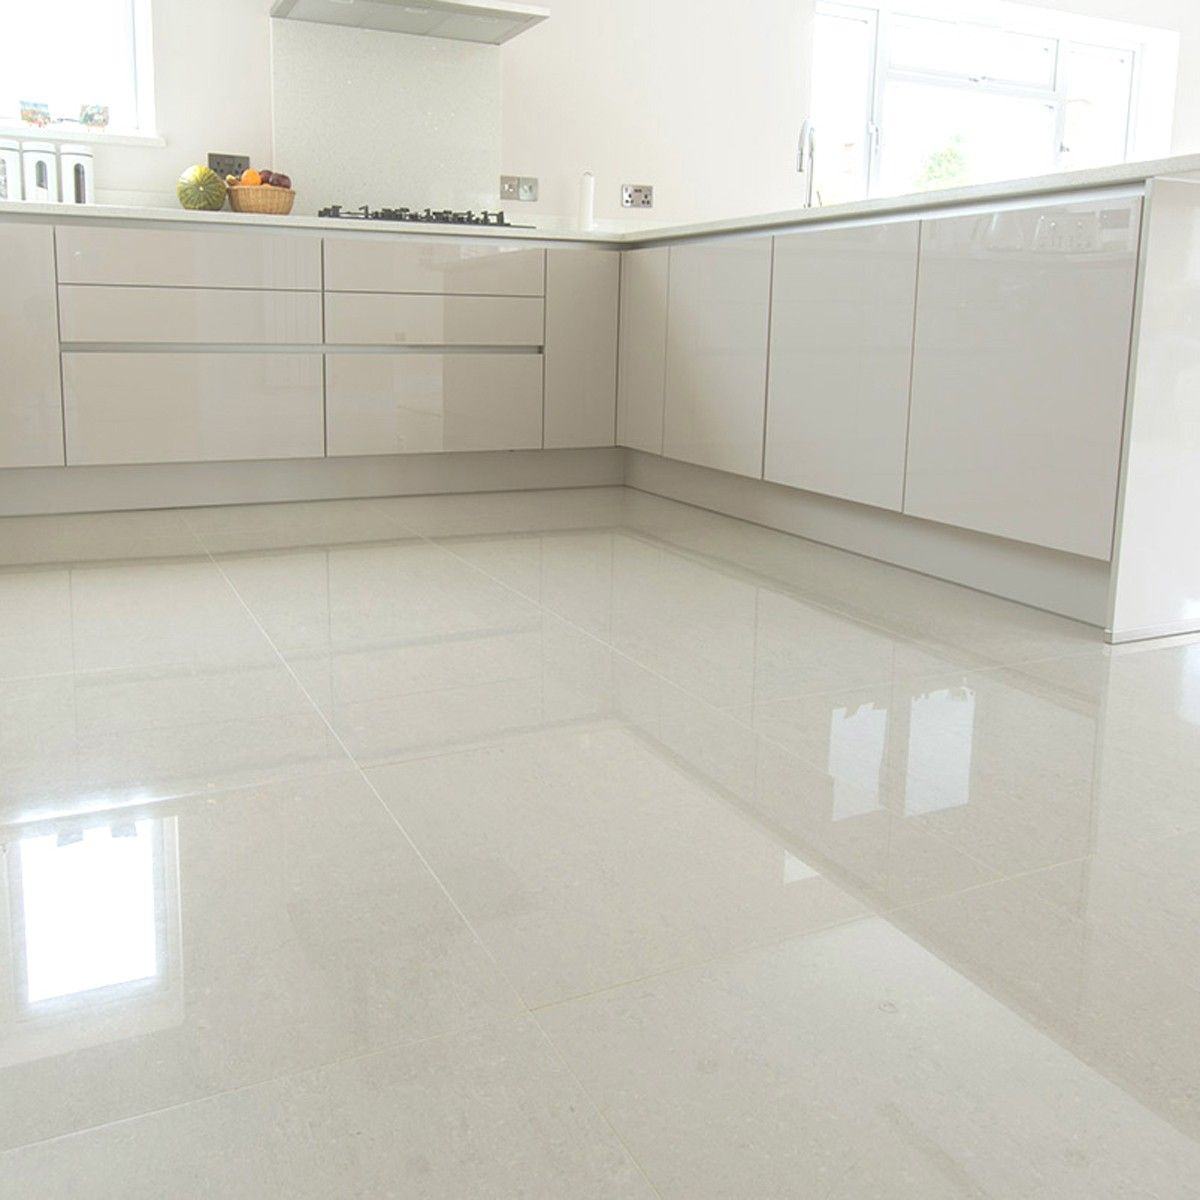 kitchen floor tile designs. Crown Tiles  60x60cm Super Polished Ivory Porcelain